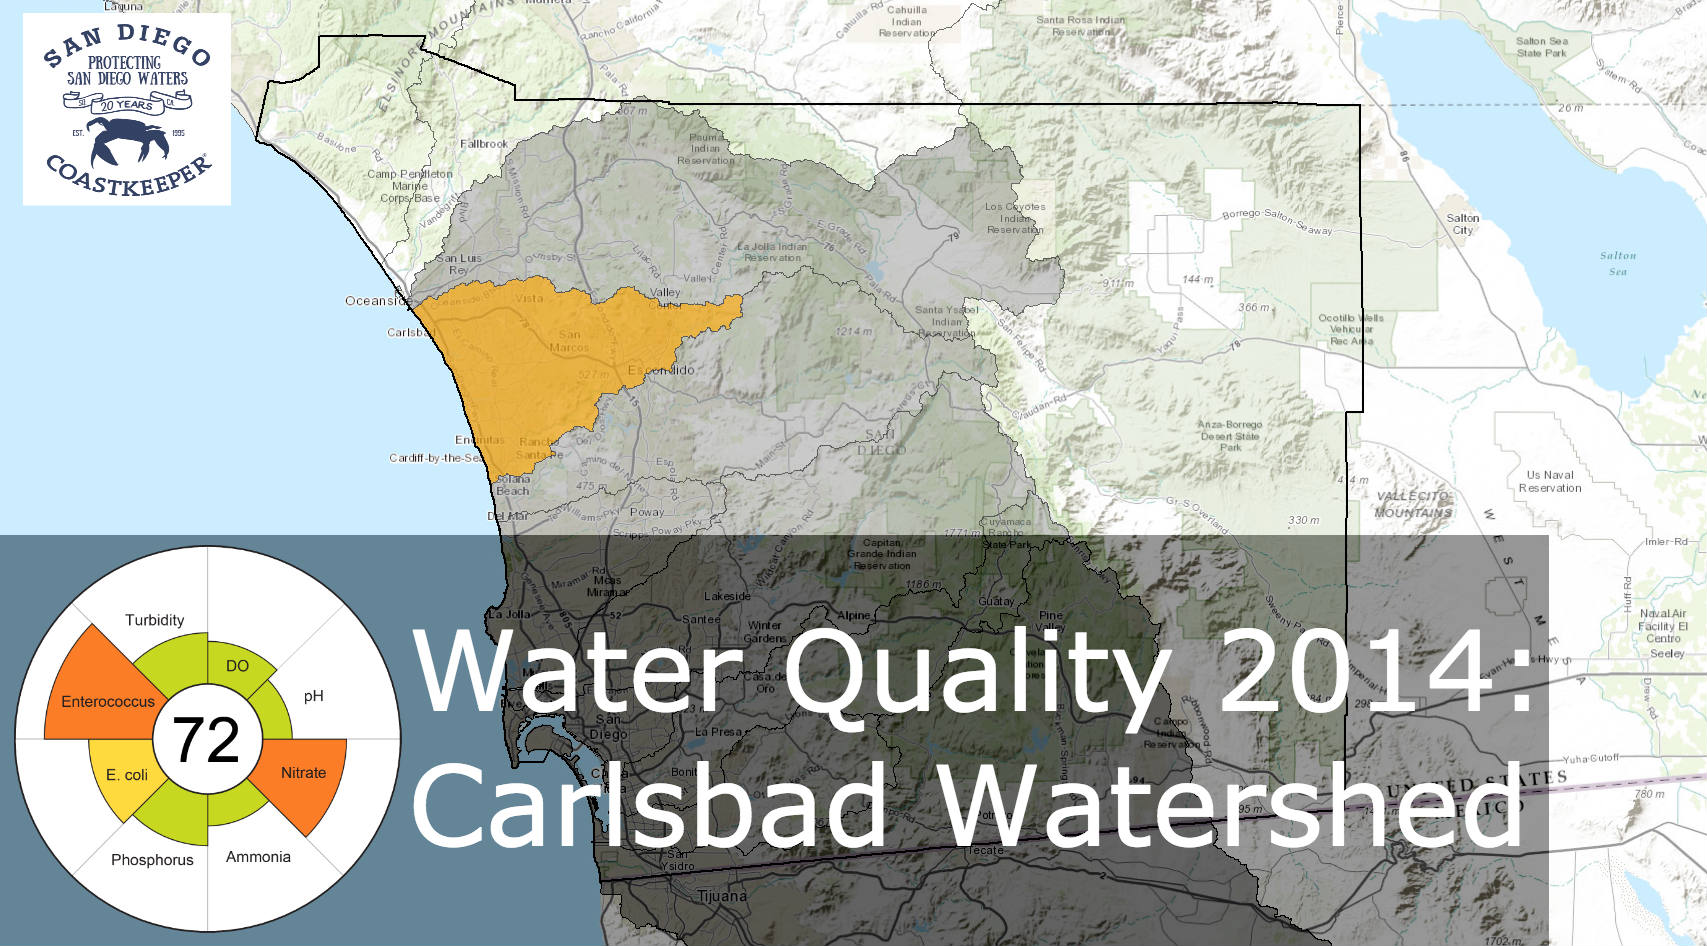 carlsbad water quality 2014